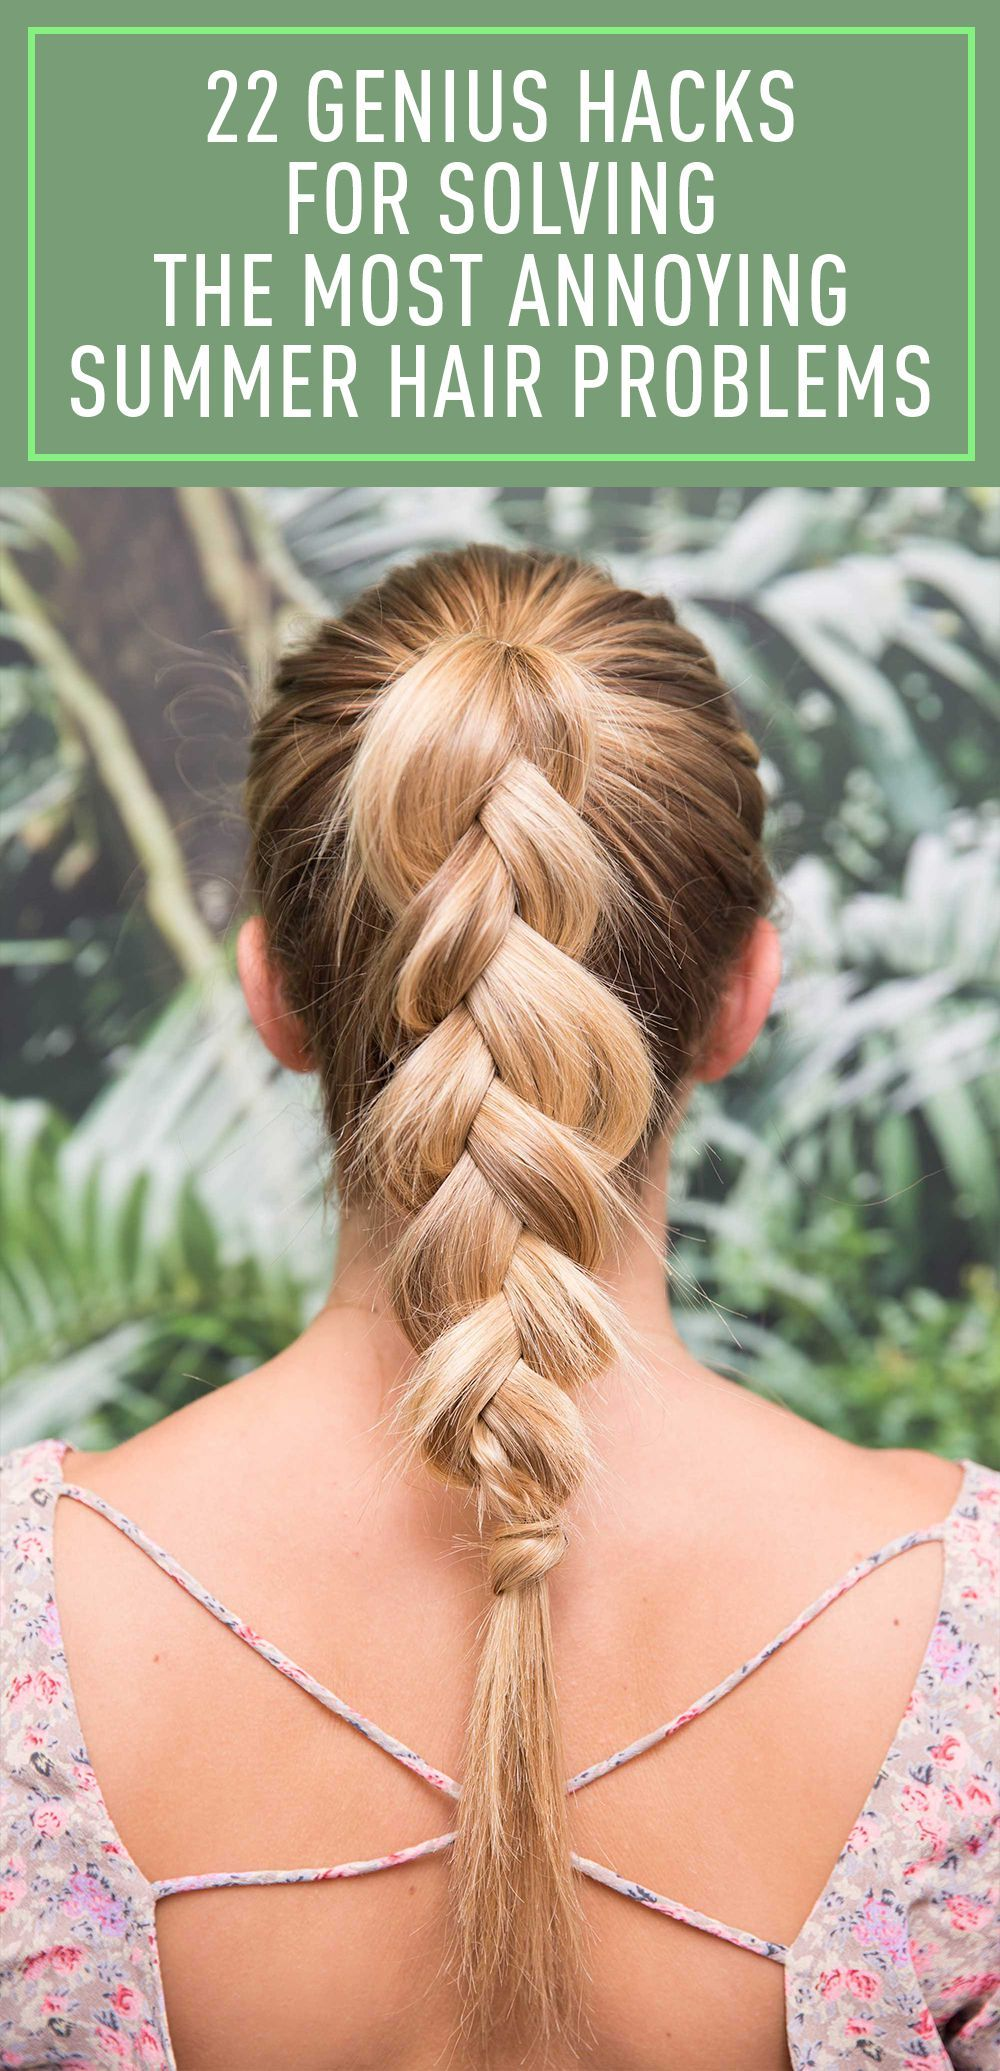 22 Genius Hacks for Solving the Most Annoying Summer Hair Problems   Summer hairstyles, No heat ...